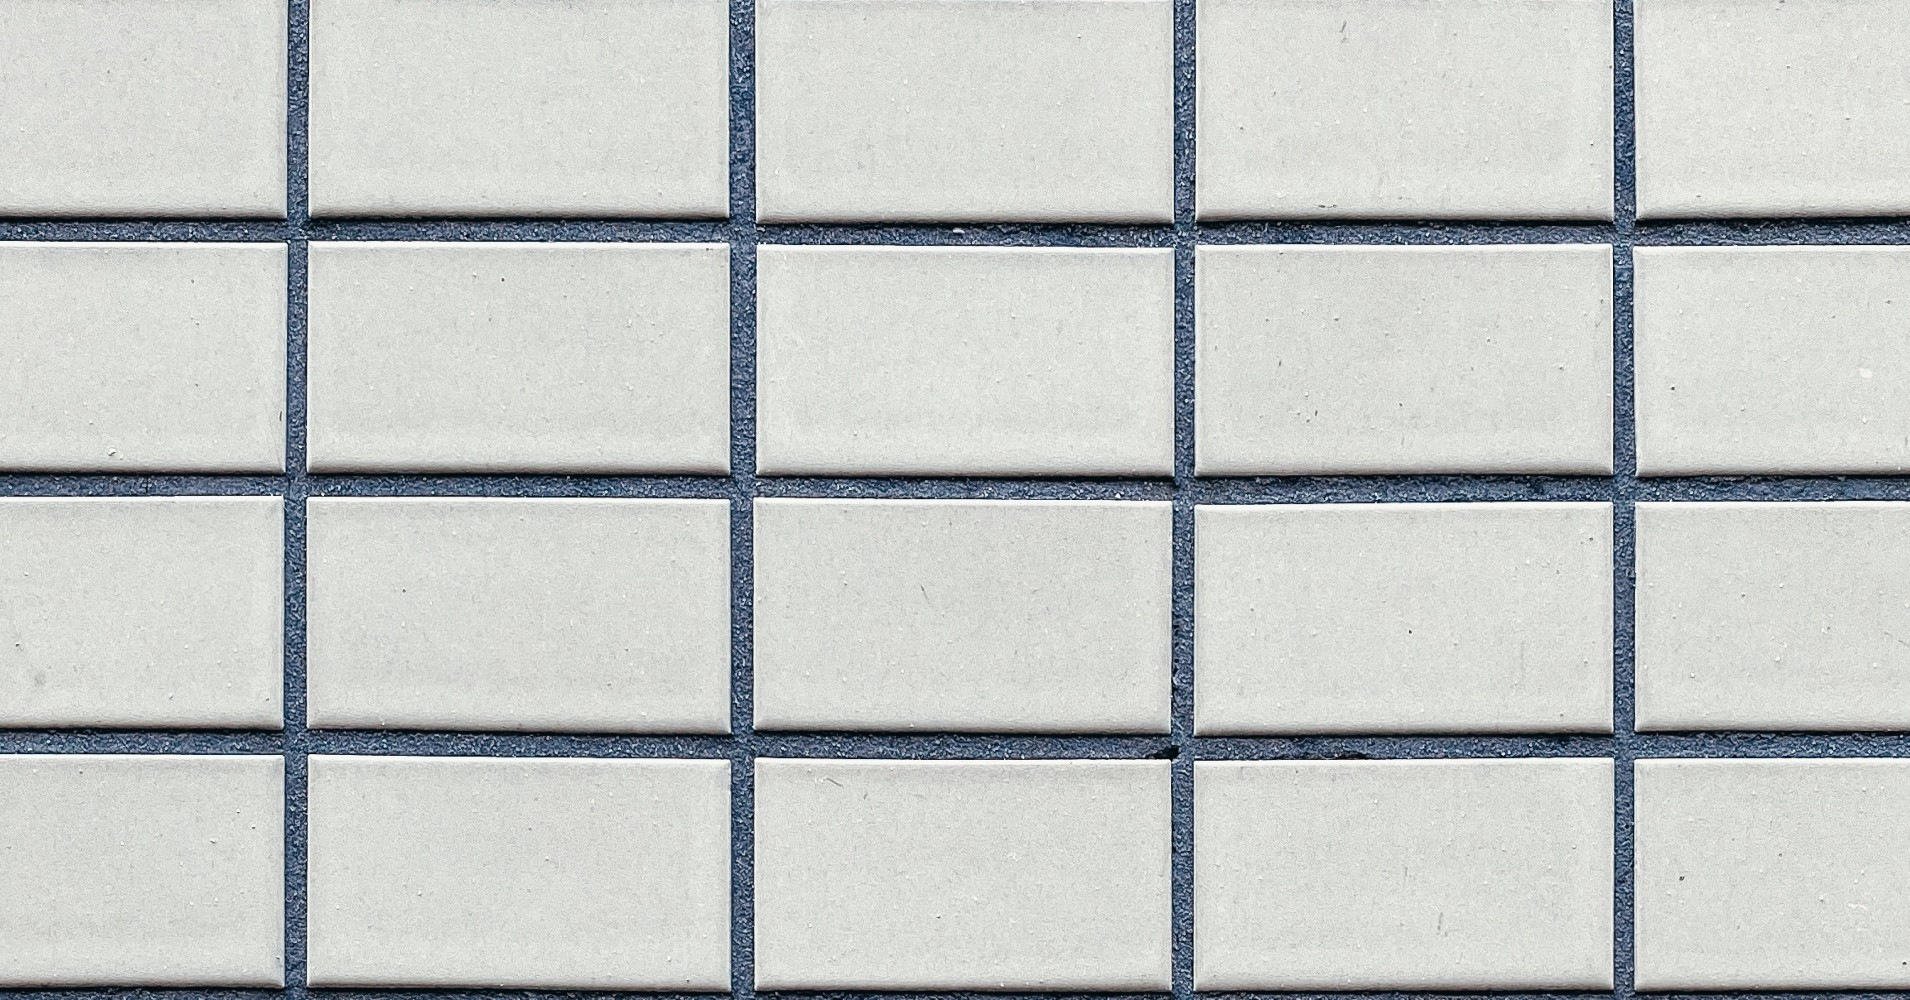 Close up grouted tiles